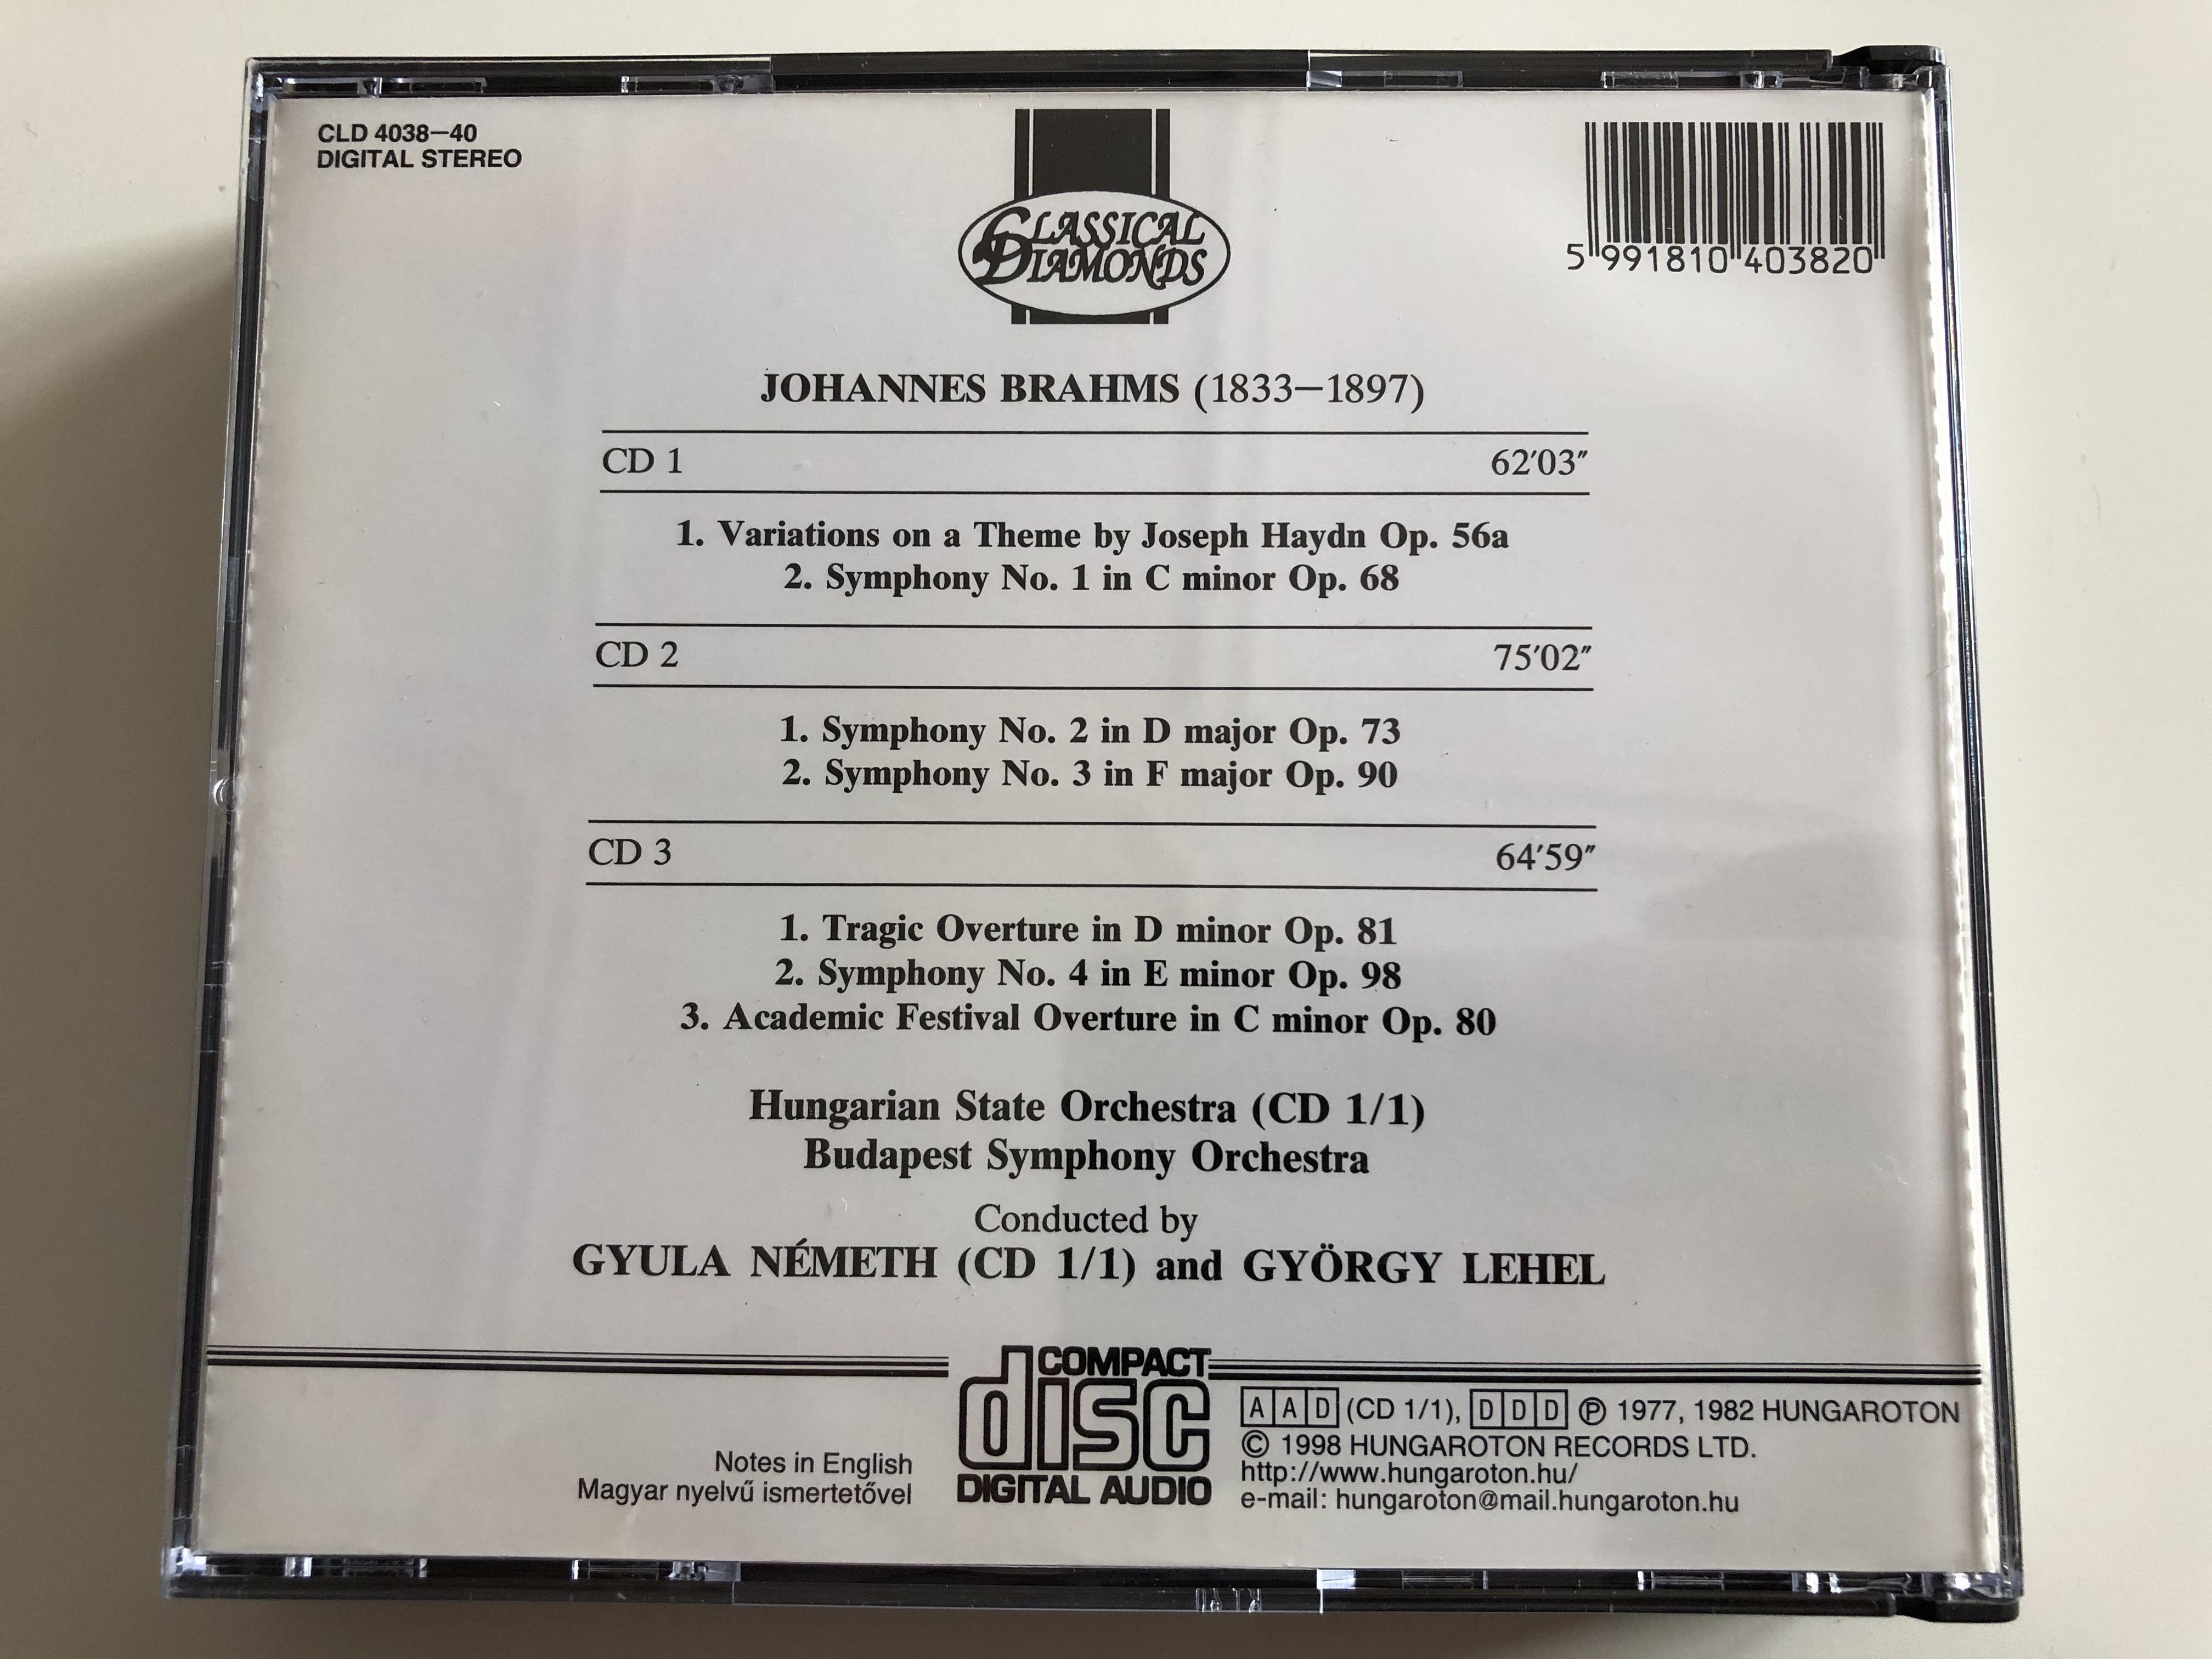 brahms-the-four-symphonies-variations-on-a-theme-by-haydn-budapest-symphony-orchestra-hungarian-state-orchestra-gyorgy-lehel-gyula-nemeth-hungaroton-classic-3x-audio-cd-1998-stereo-cld-5-.jpg